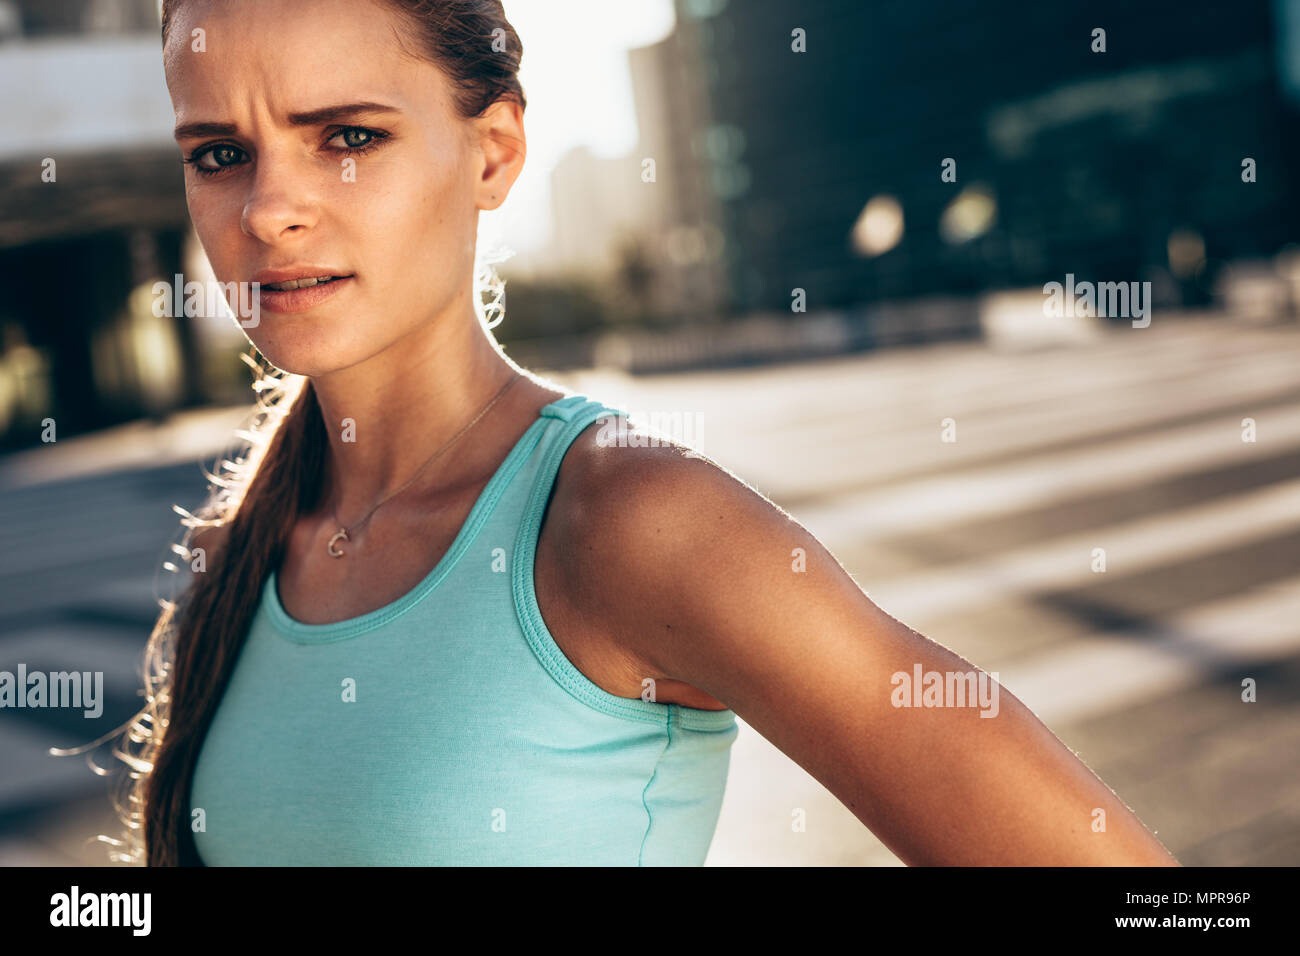 Strong woman in sports bra standing outdoors and standing at camera. Sportswoman looking with serious expressions after working out in morning outdoor Stock Photo